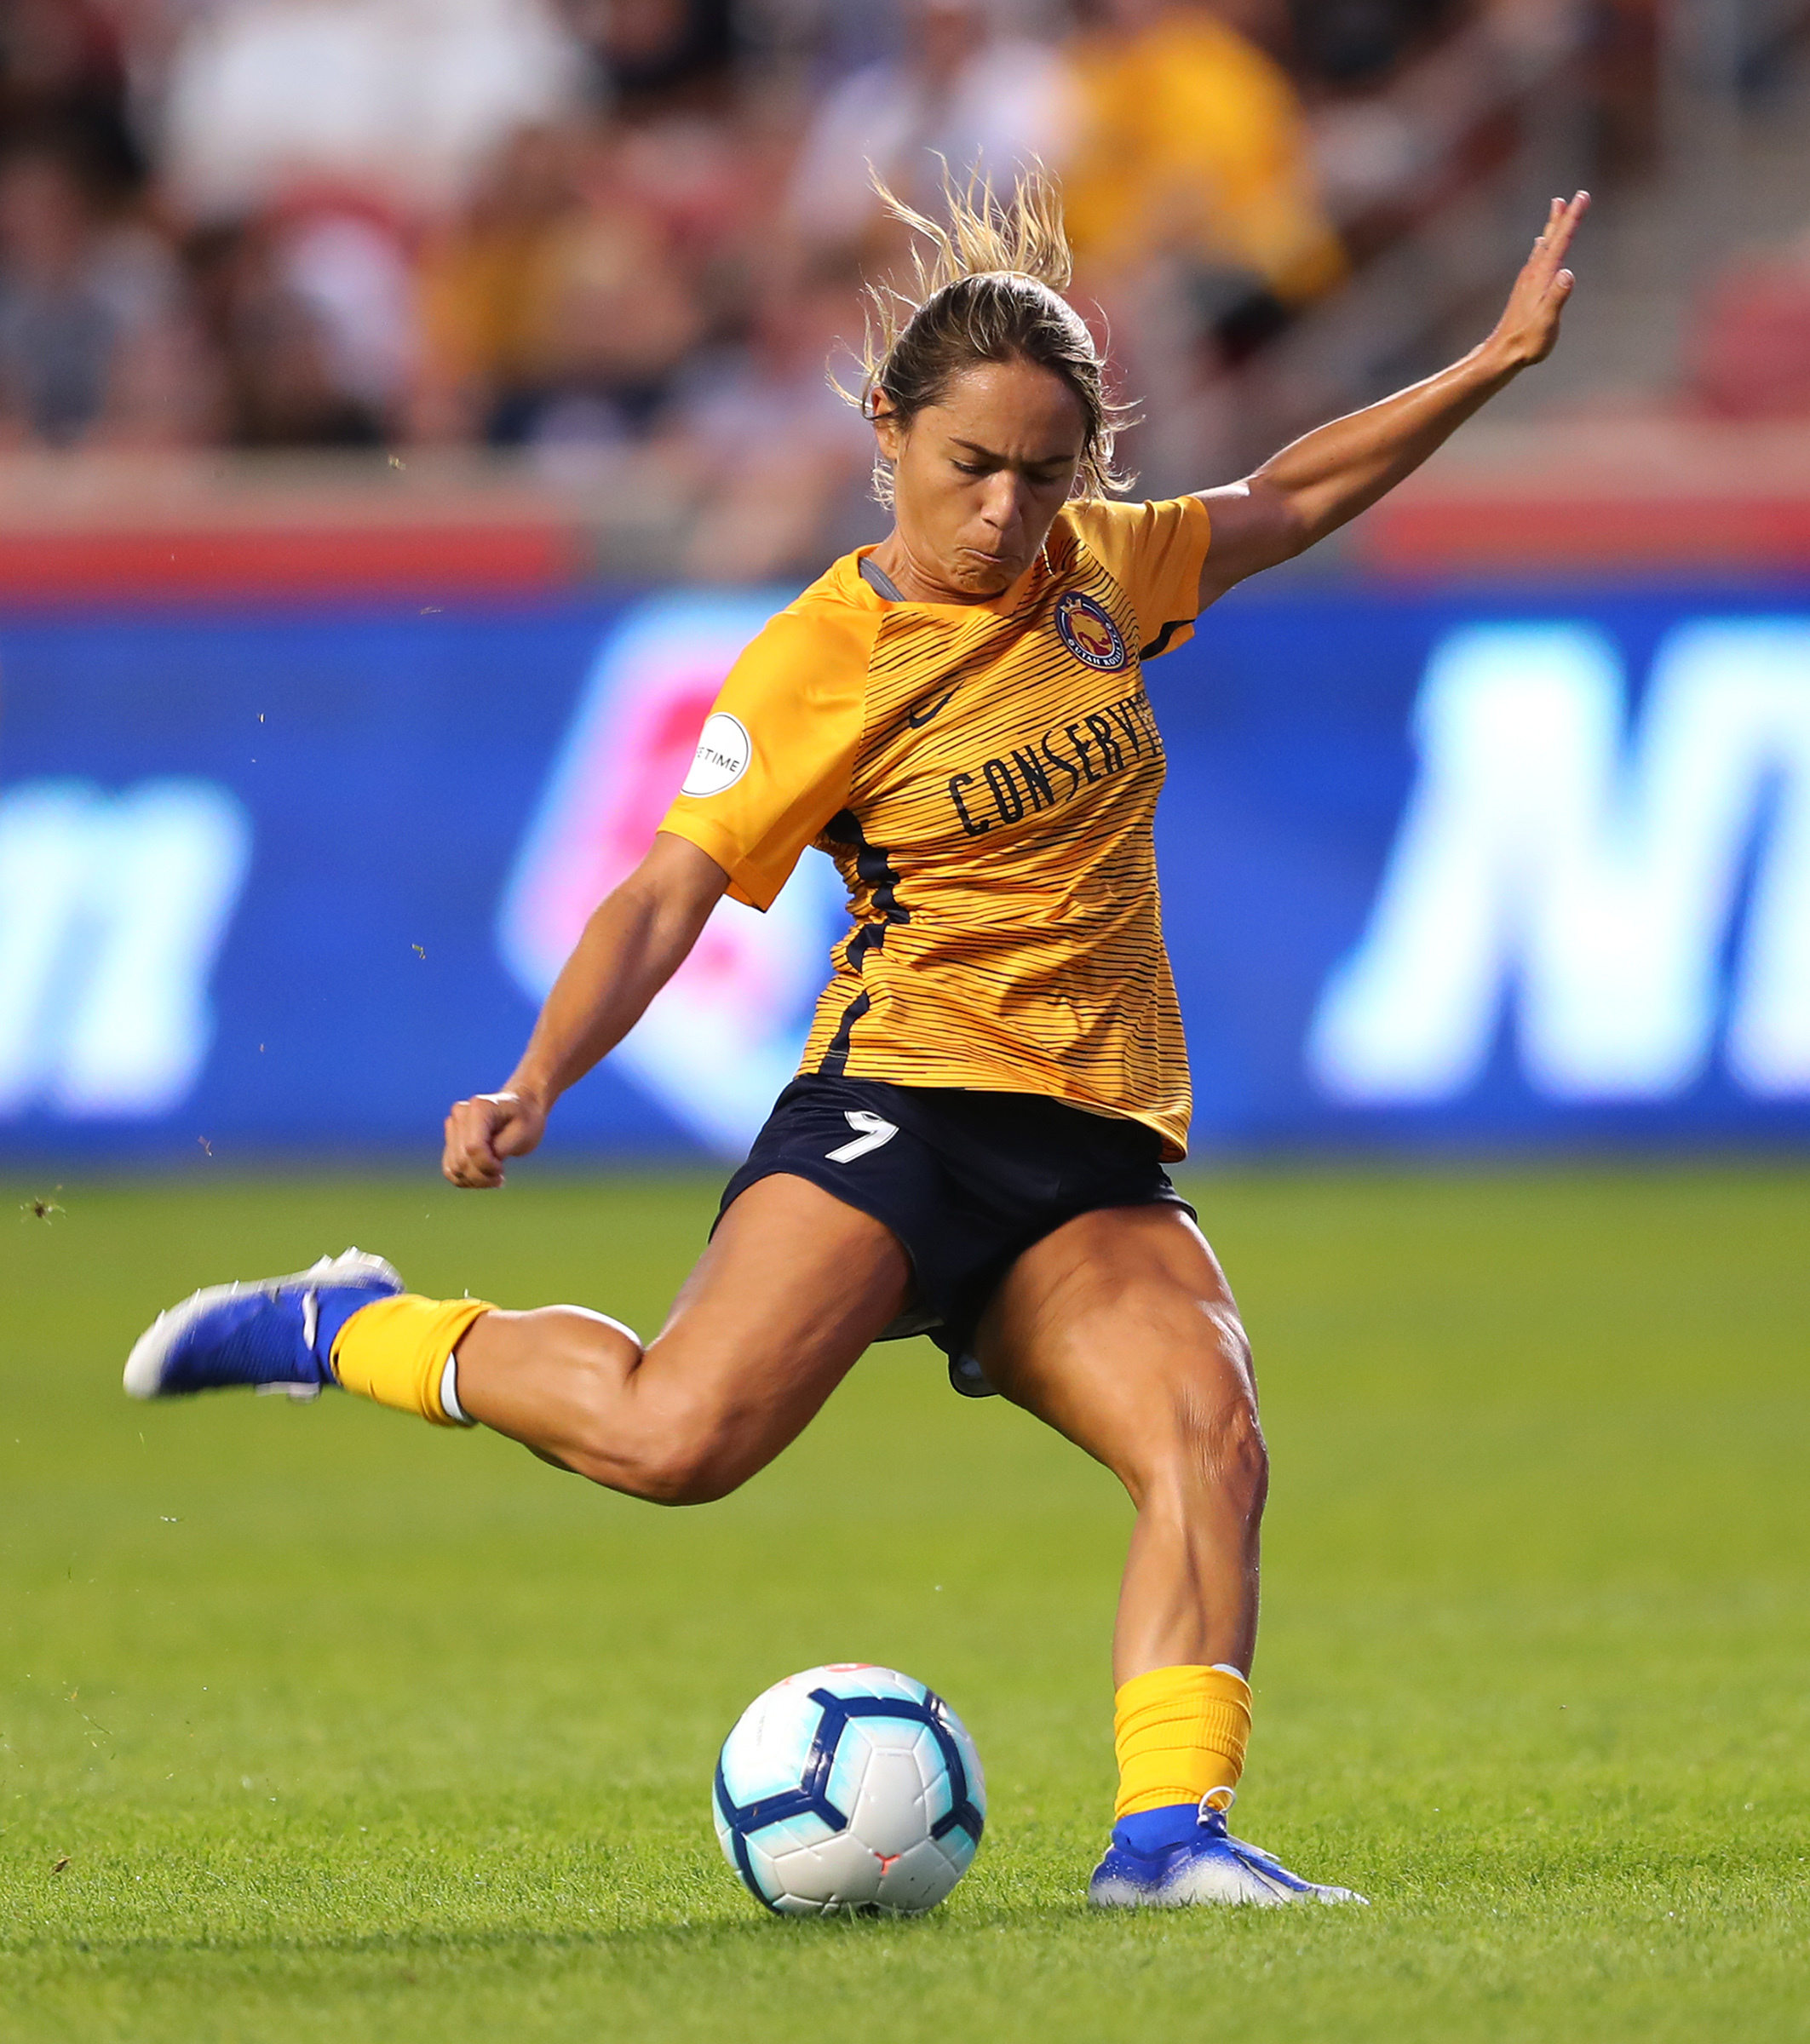 Utah Royals FC midfielder Lo'eau LaBonta (9) goes for a shot against Sky Blue FC at Rio Tinto Stadium in Sandy on Wednesday, Aug. 7, 2019.